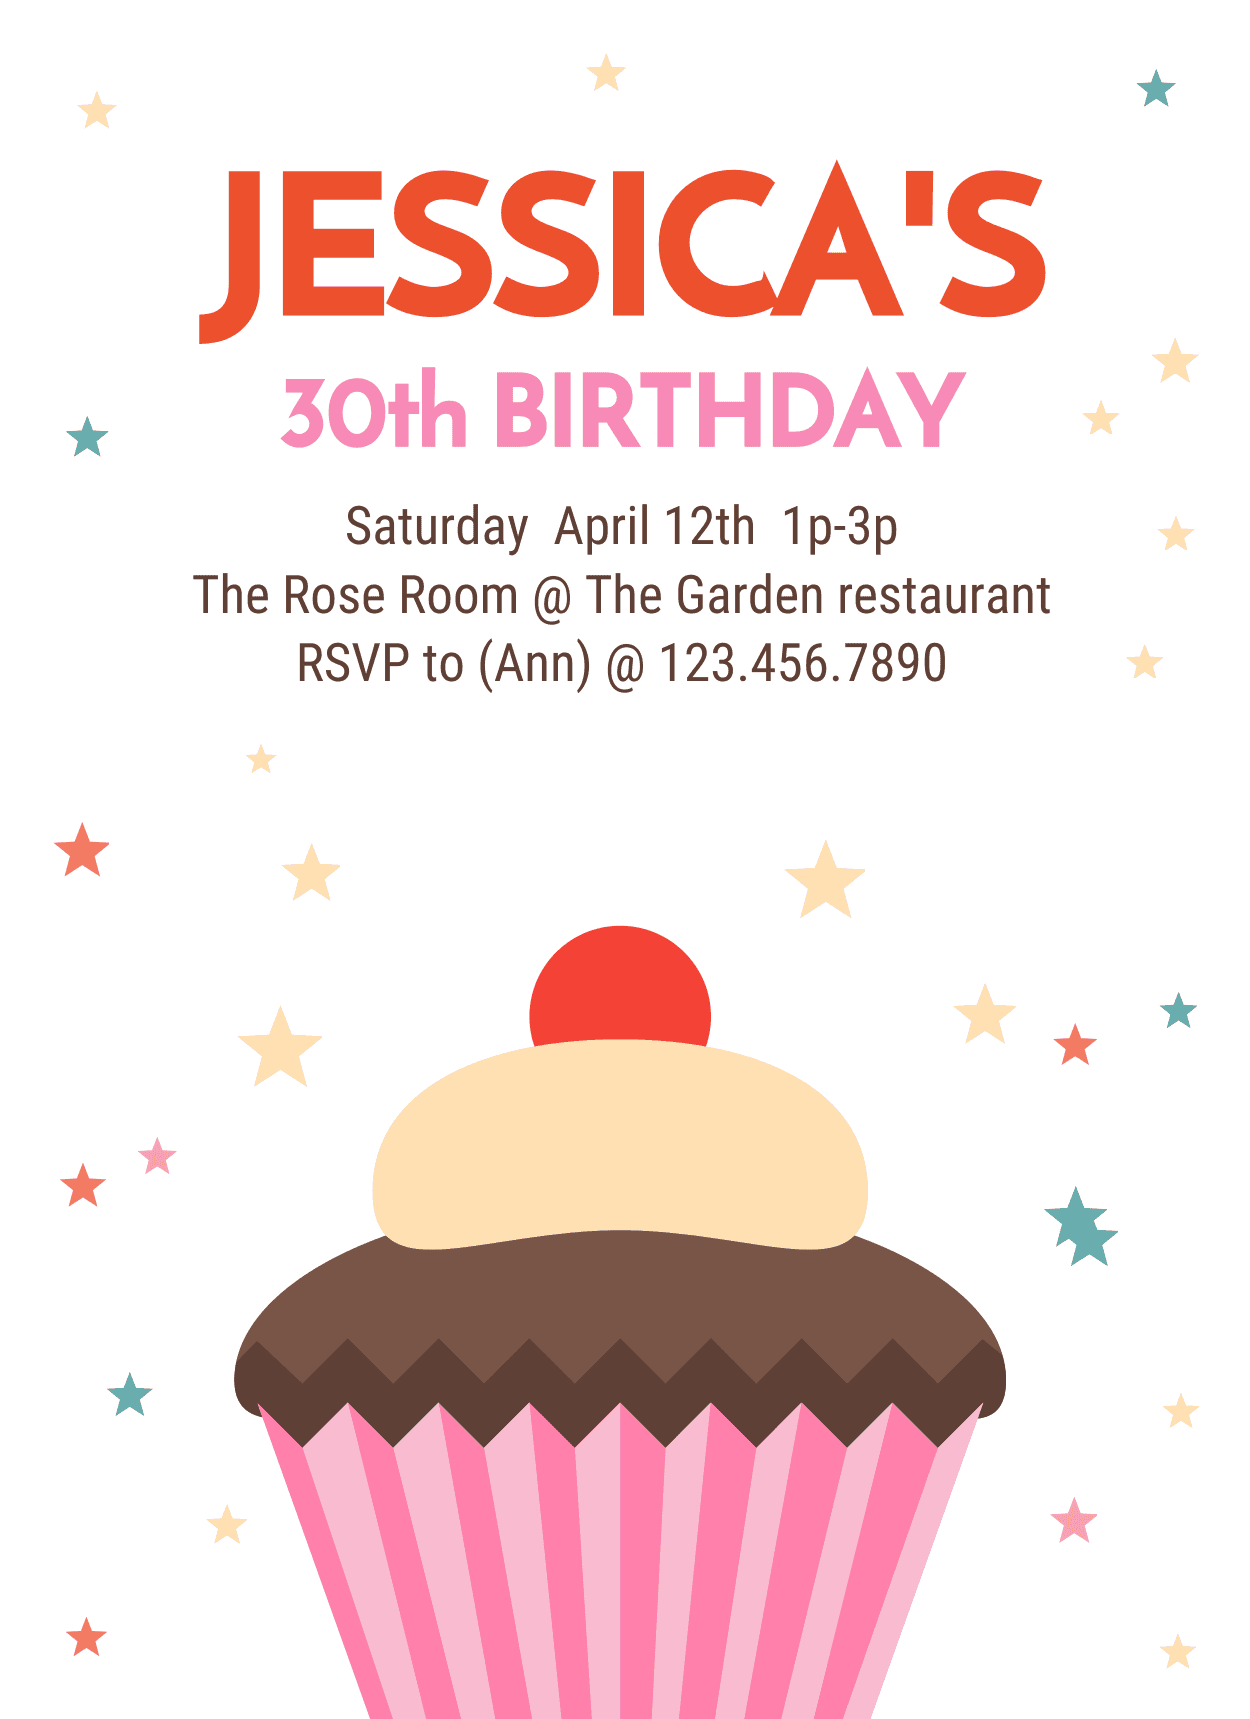 10 Creative Birthday Invitation Card Design Tips [+Templates] - Venngage